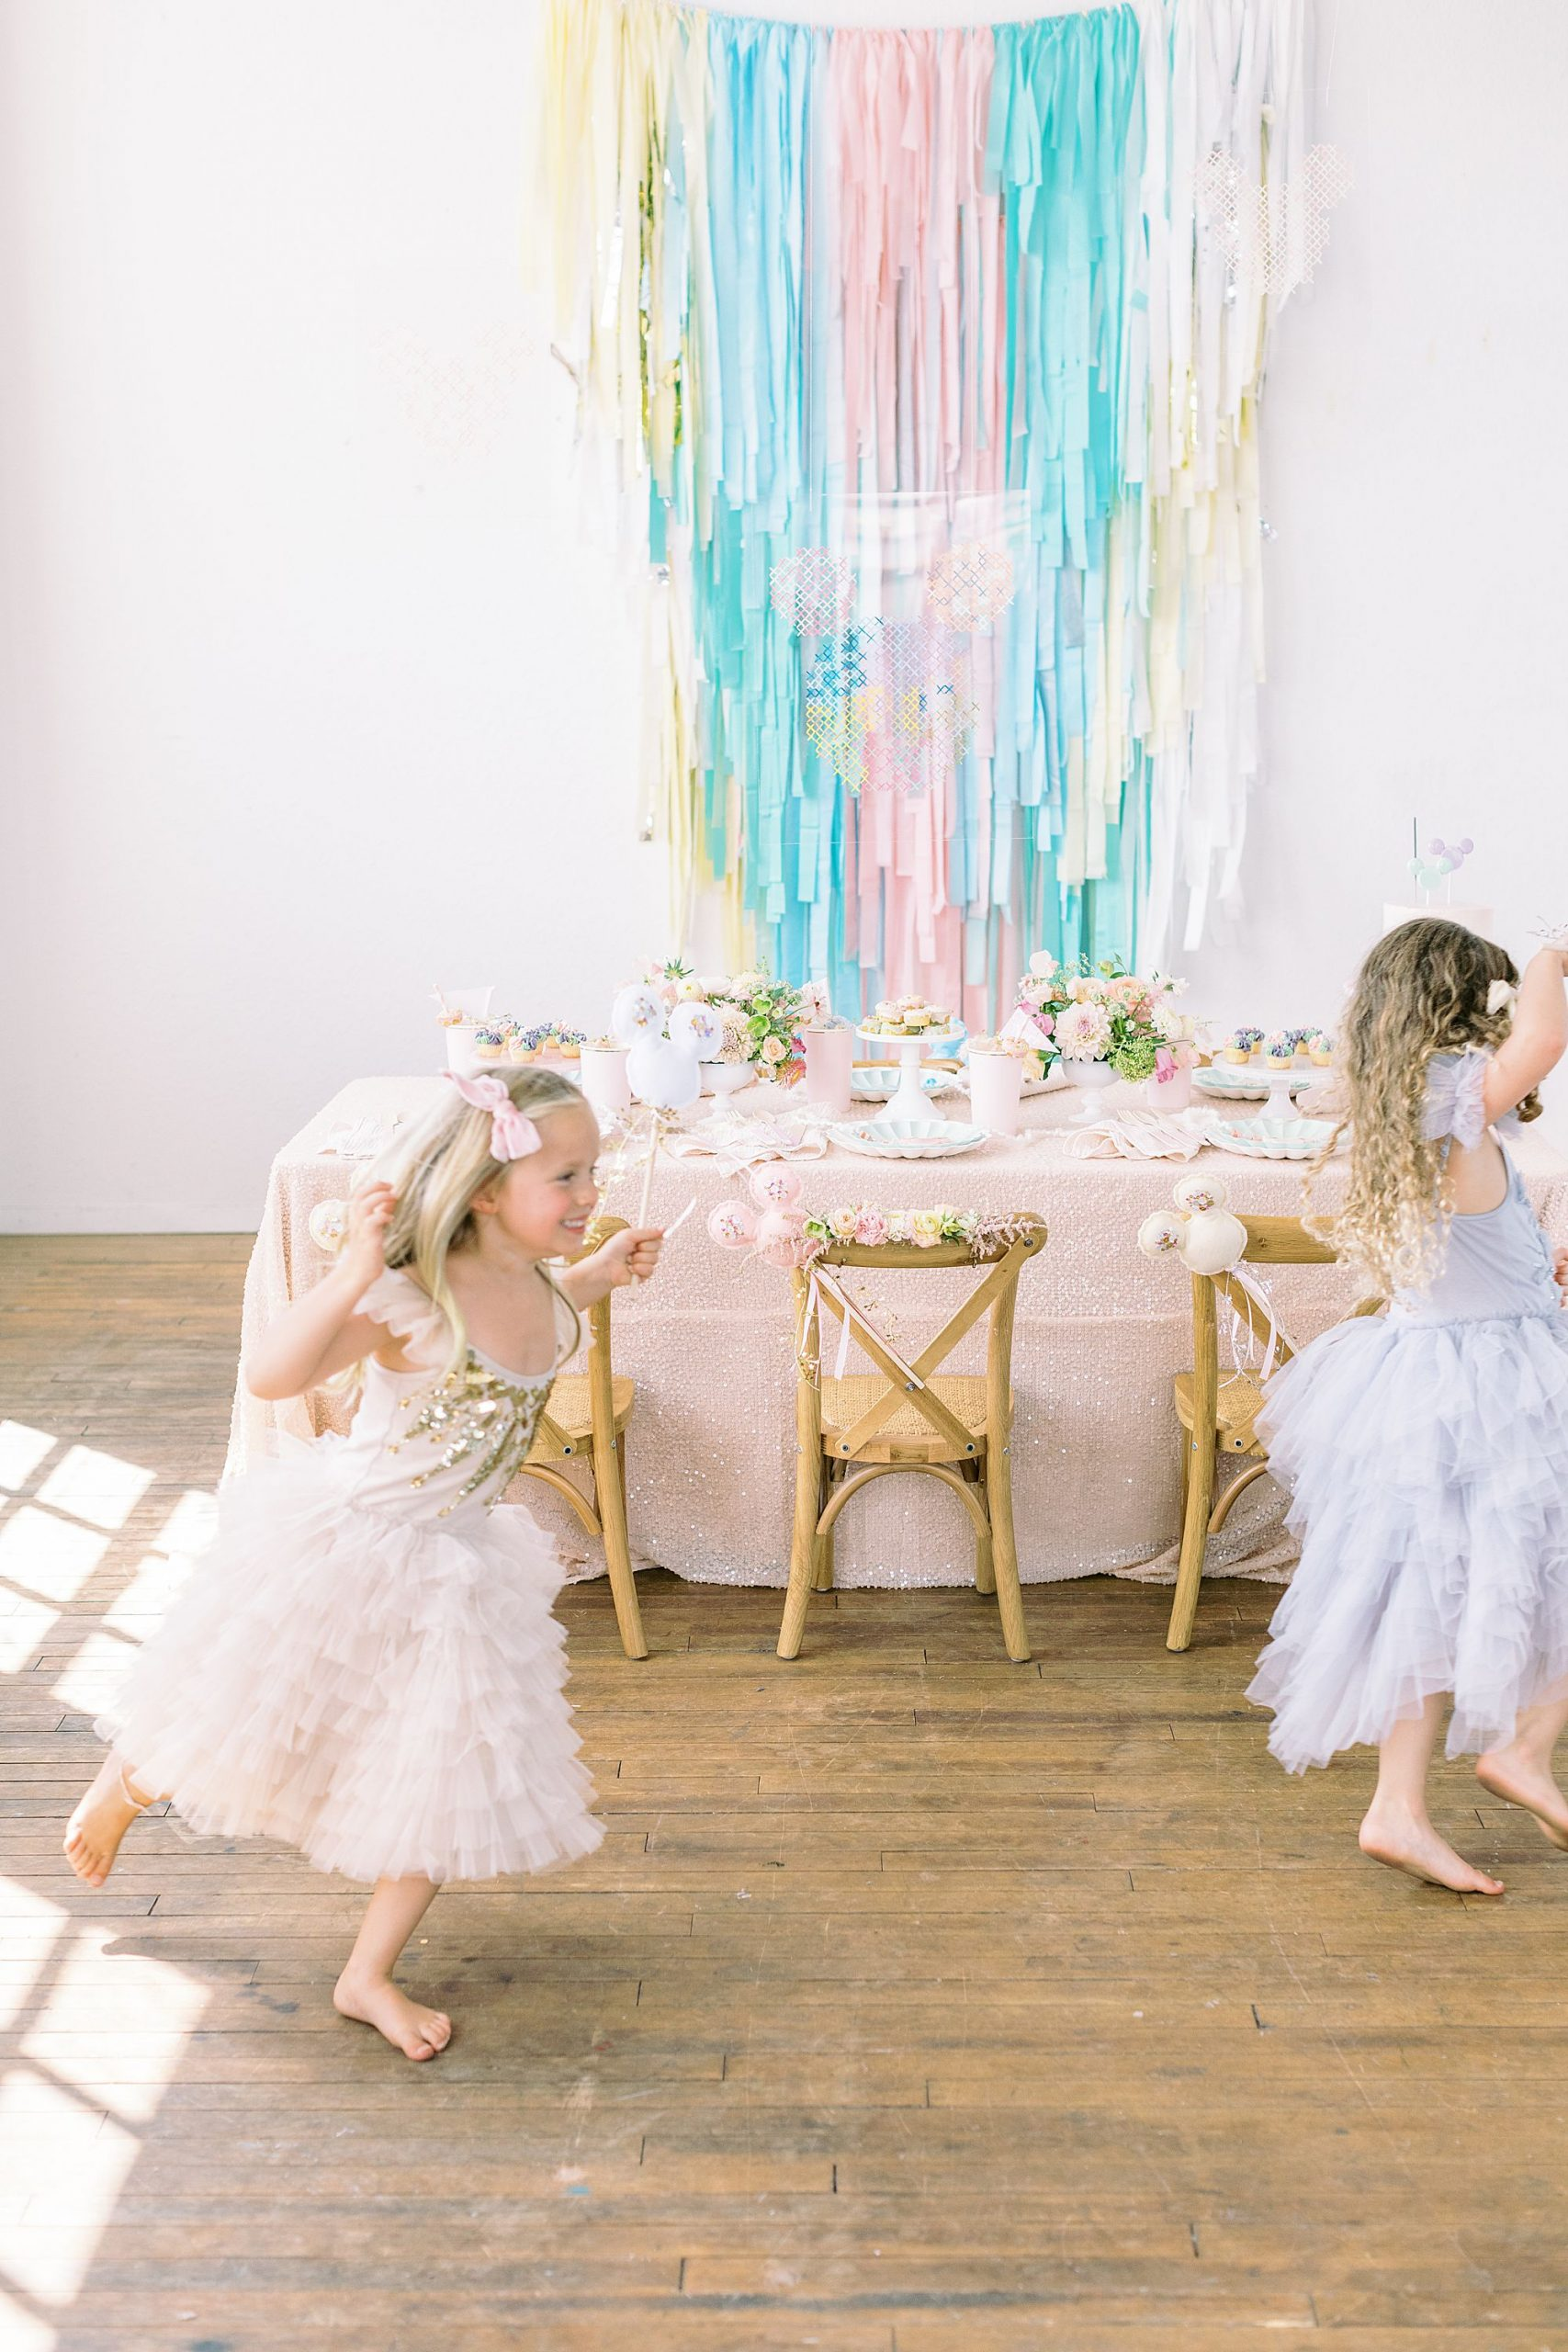 Vintage Disney Birthday Party for Princess Nora's Fourth Birthday - Featured on 100 Layer Cake - Ashley Baumgartner - Parker Grace Events_0049.jpg